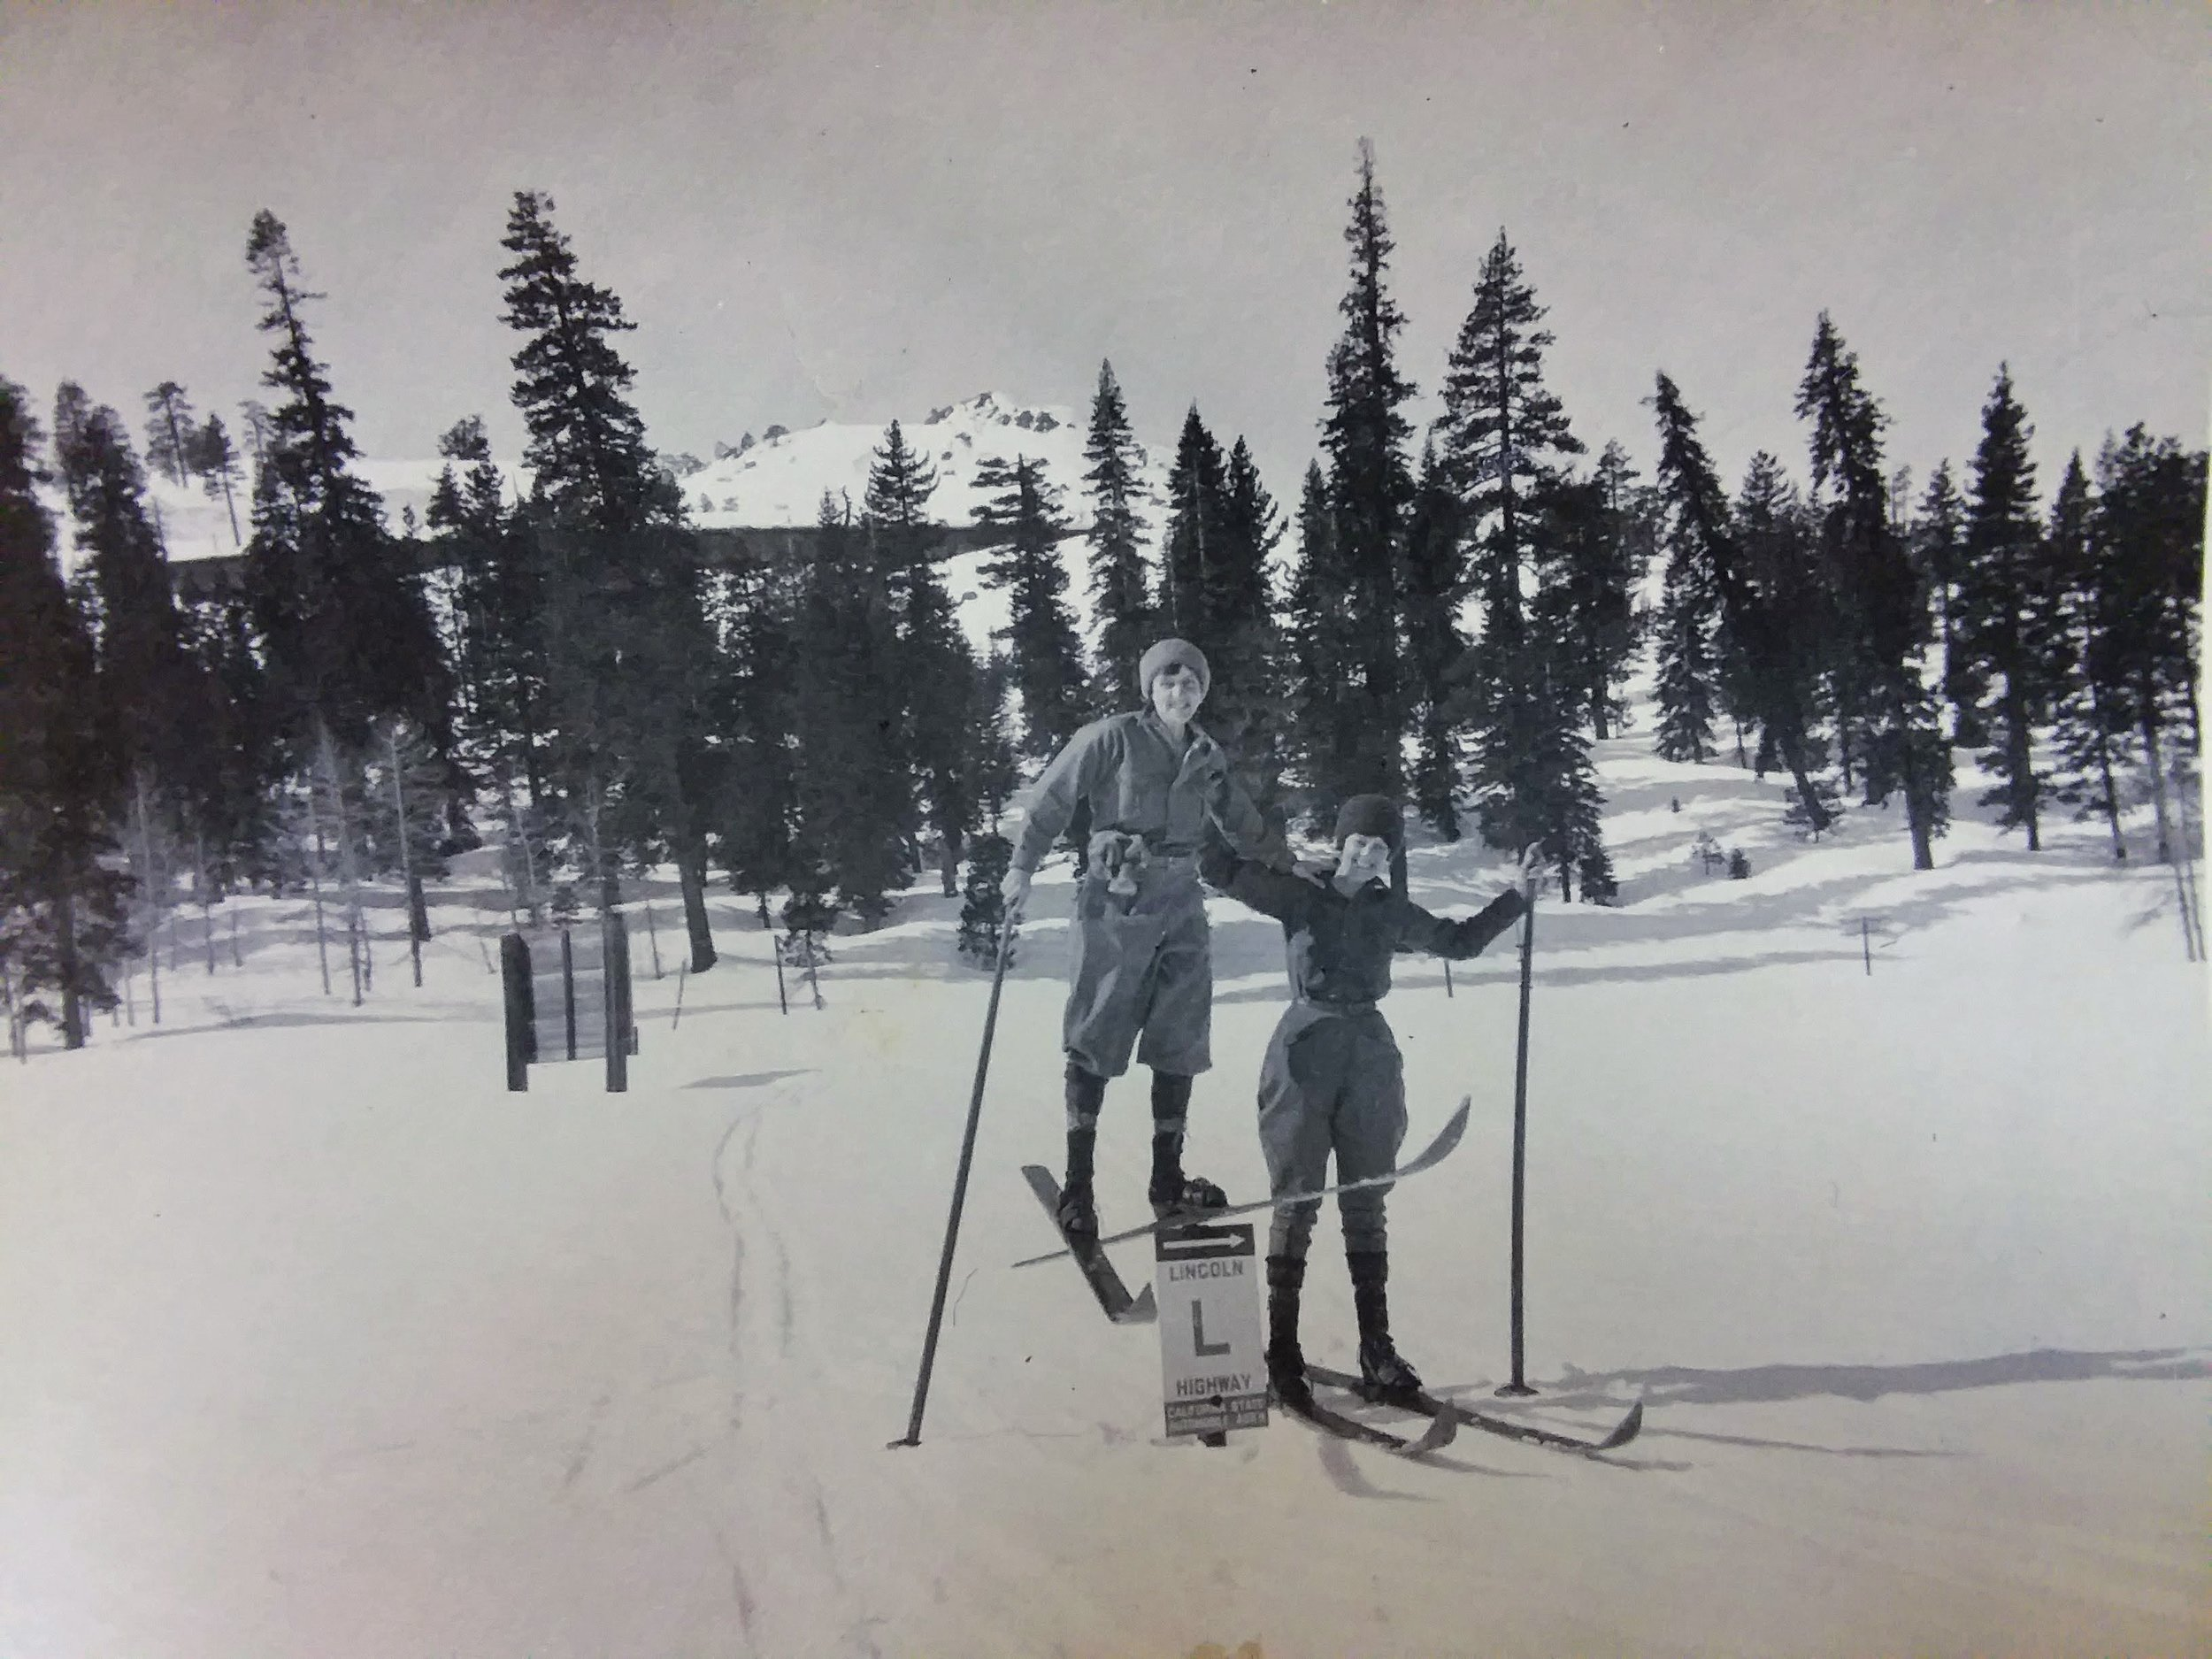 Notice the Lincoln Highway Sign buried in the snow! Photo from Donner Summit Historical Museum, Norm Sayler collection.